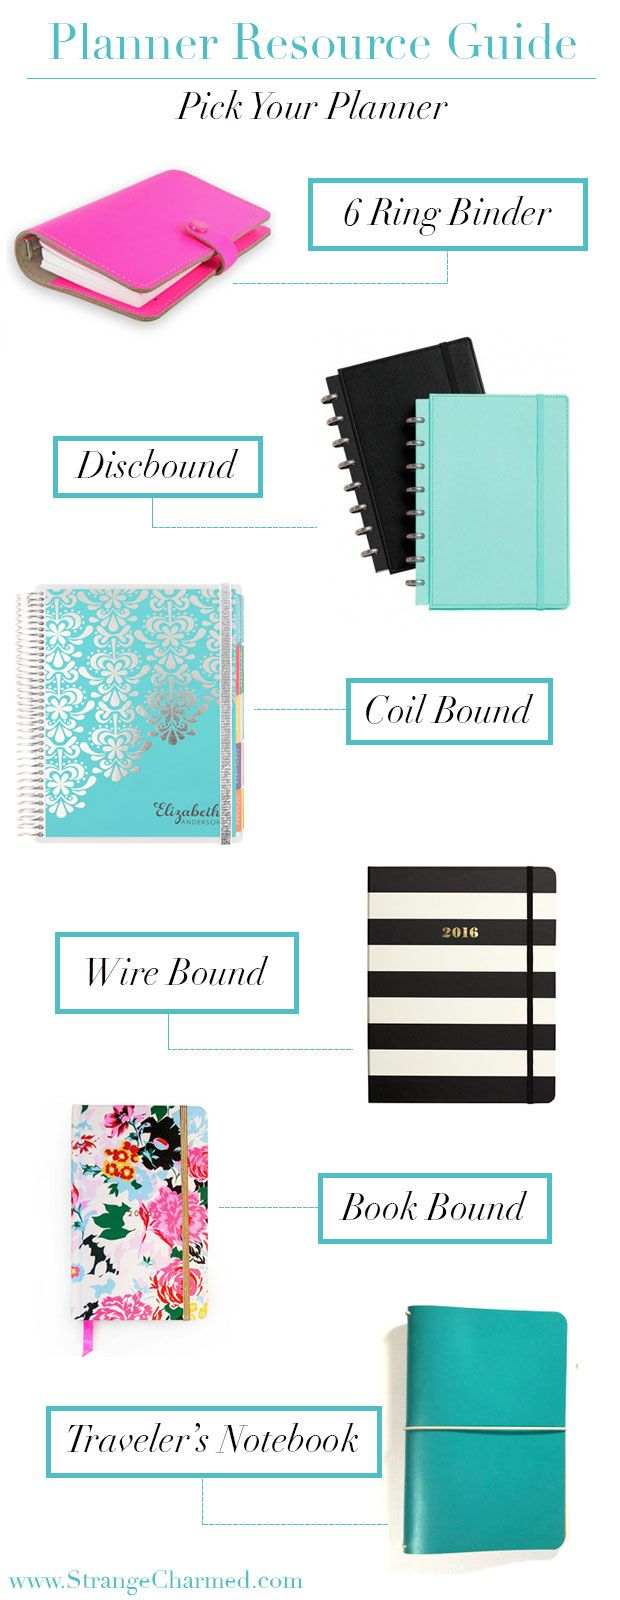 Planner Resource Guide: Pick Your Planner